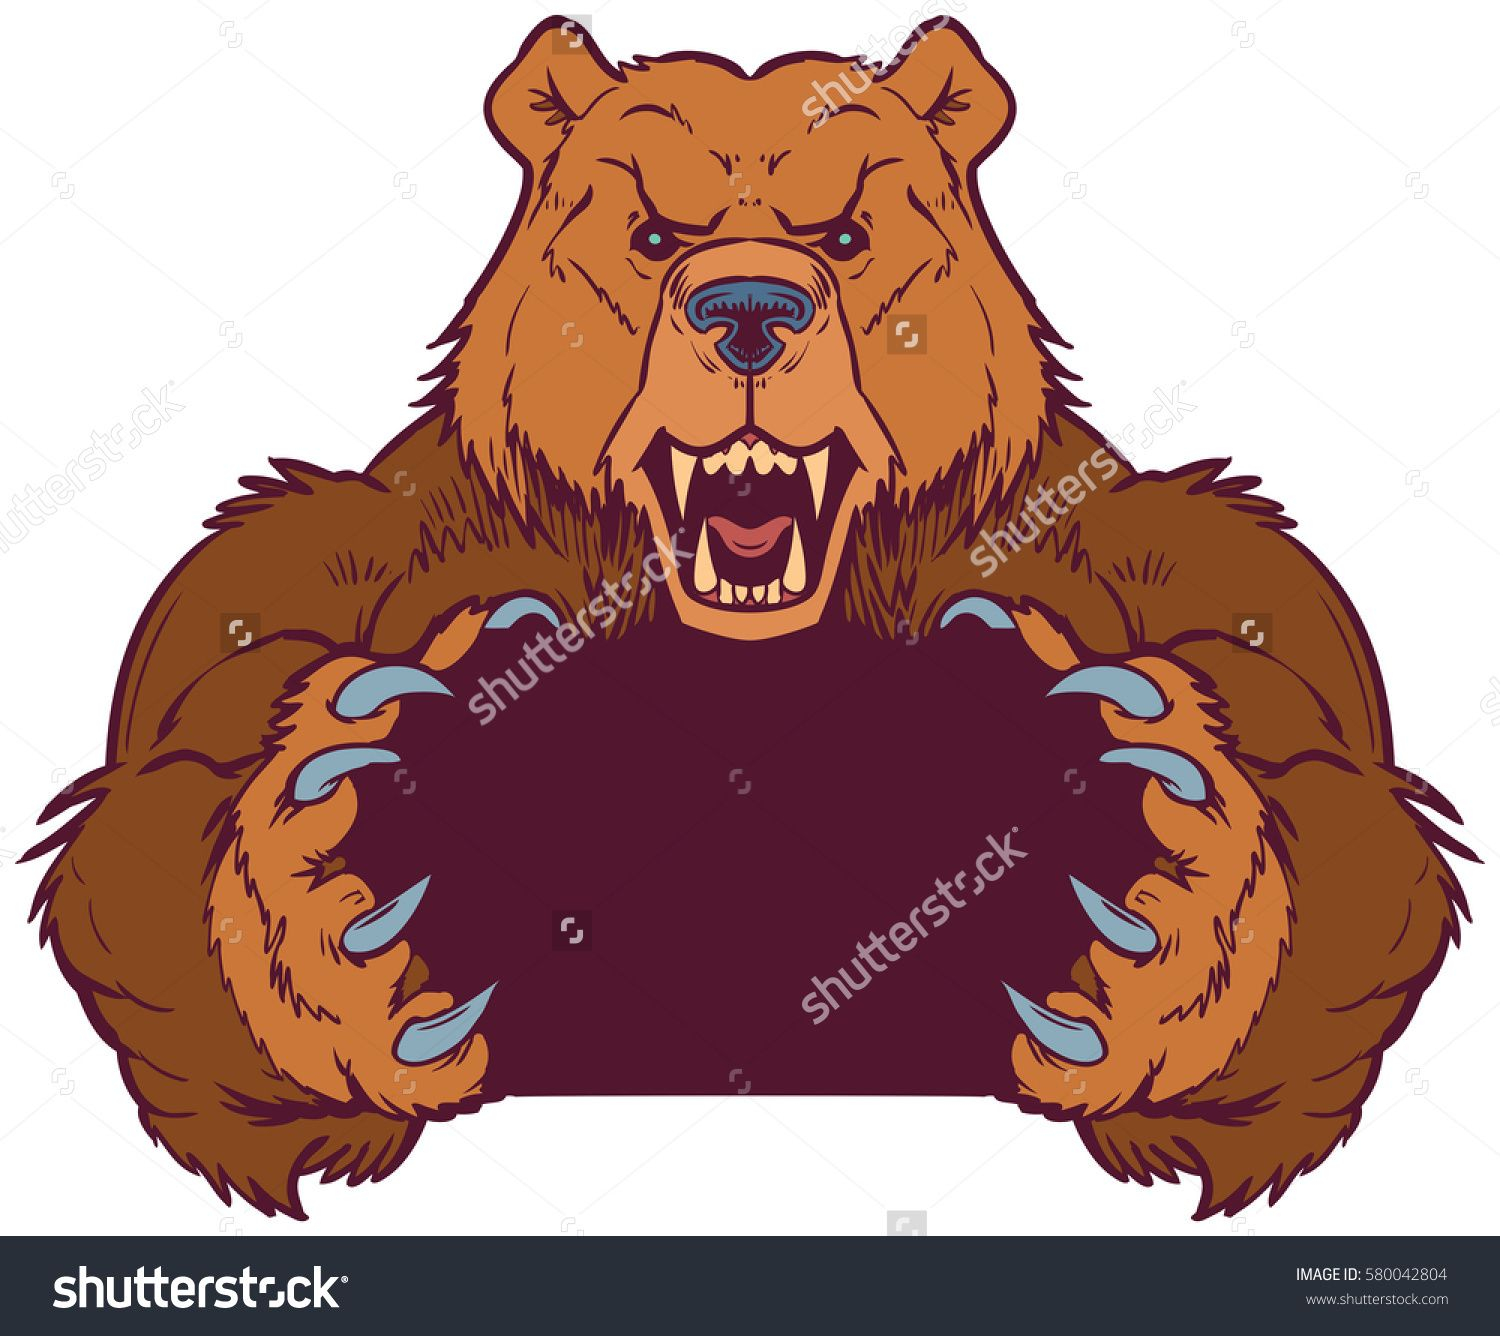 cartoon clipart illustration template of a brown bear mascot holding or gripping empty space between its claws vector layers are set up for easy  [ 1500 x 1336 Pixel ]